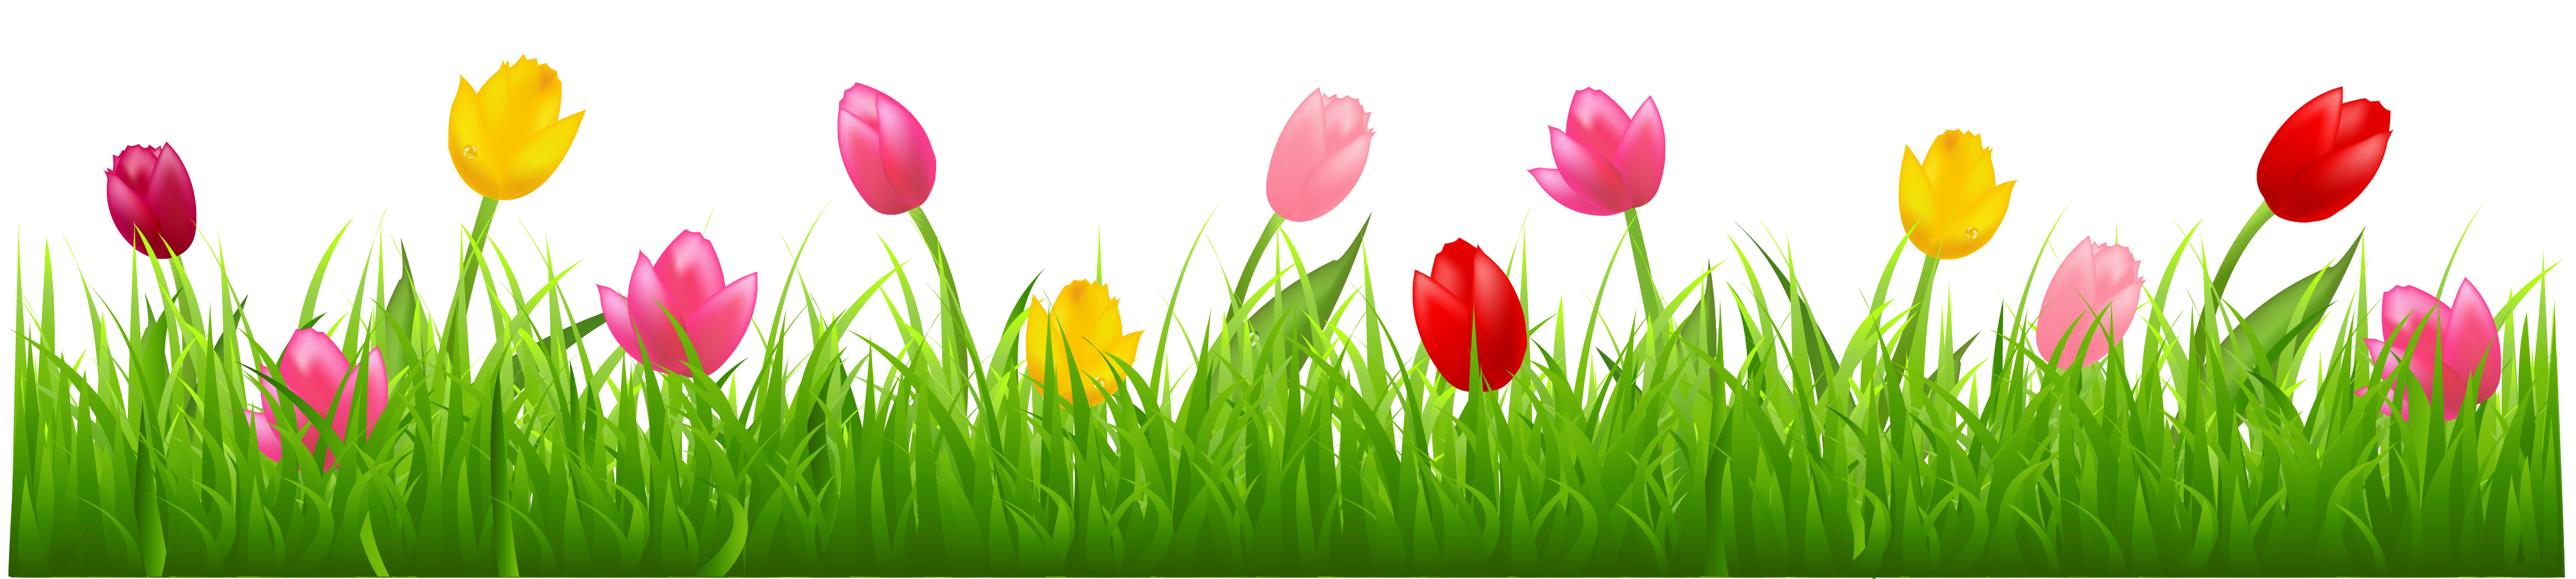 Frame clipart tulip Colorful Tulips PNG Colorful Grass